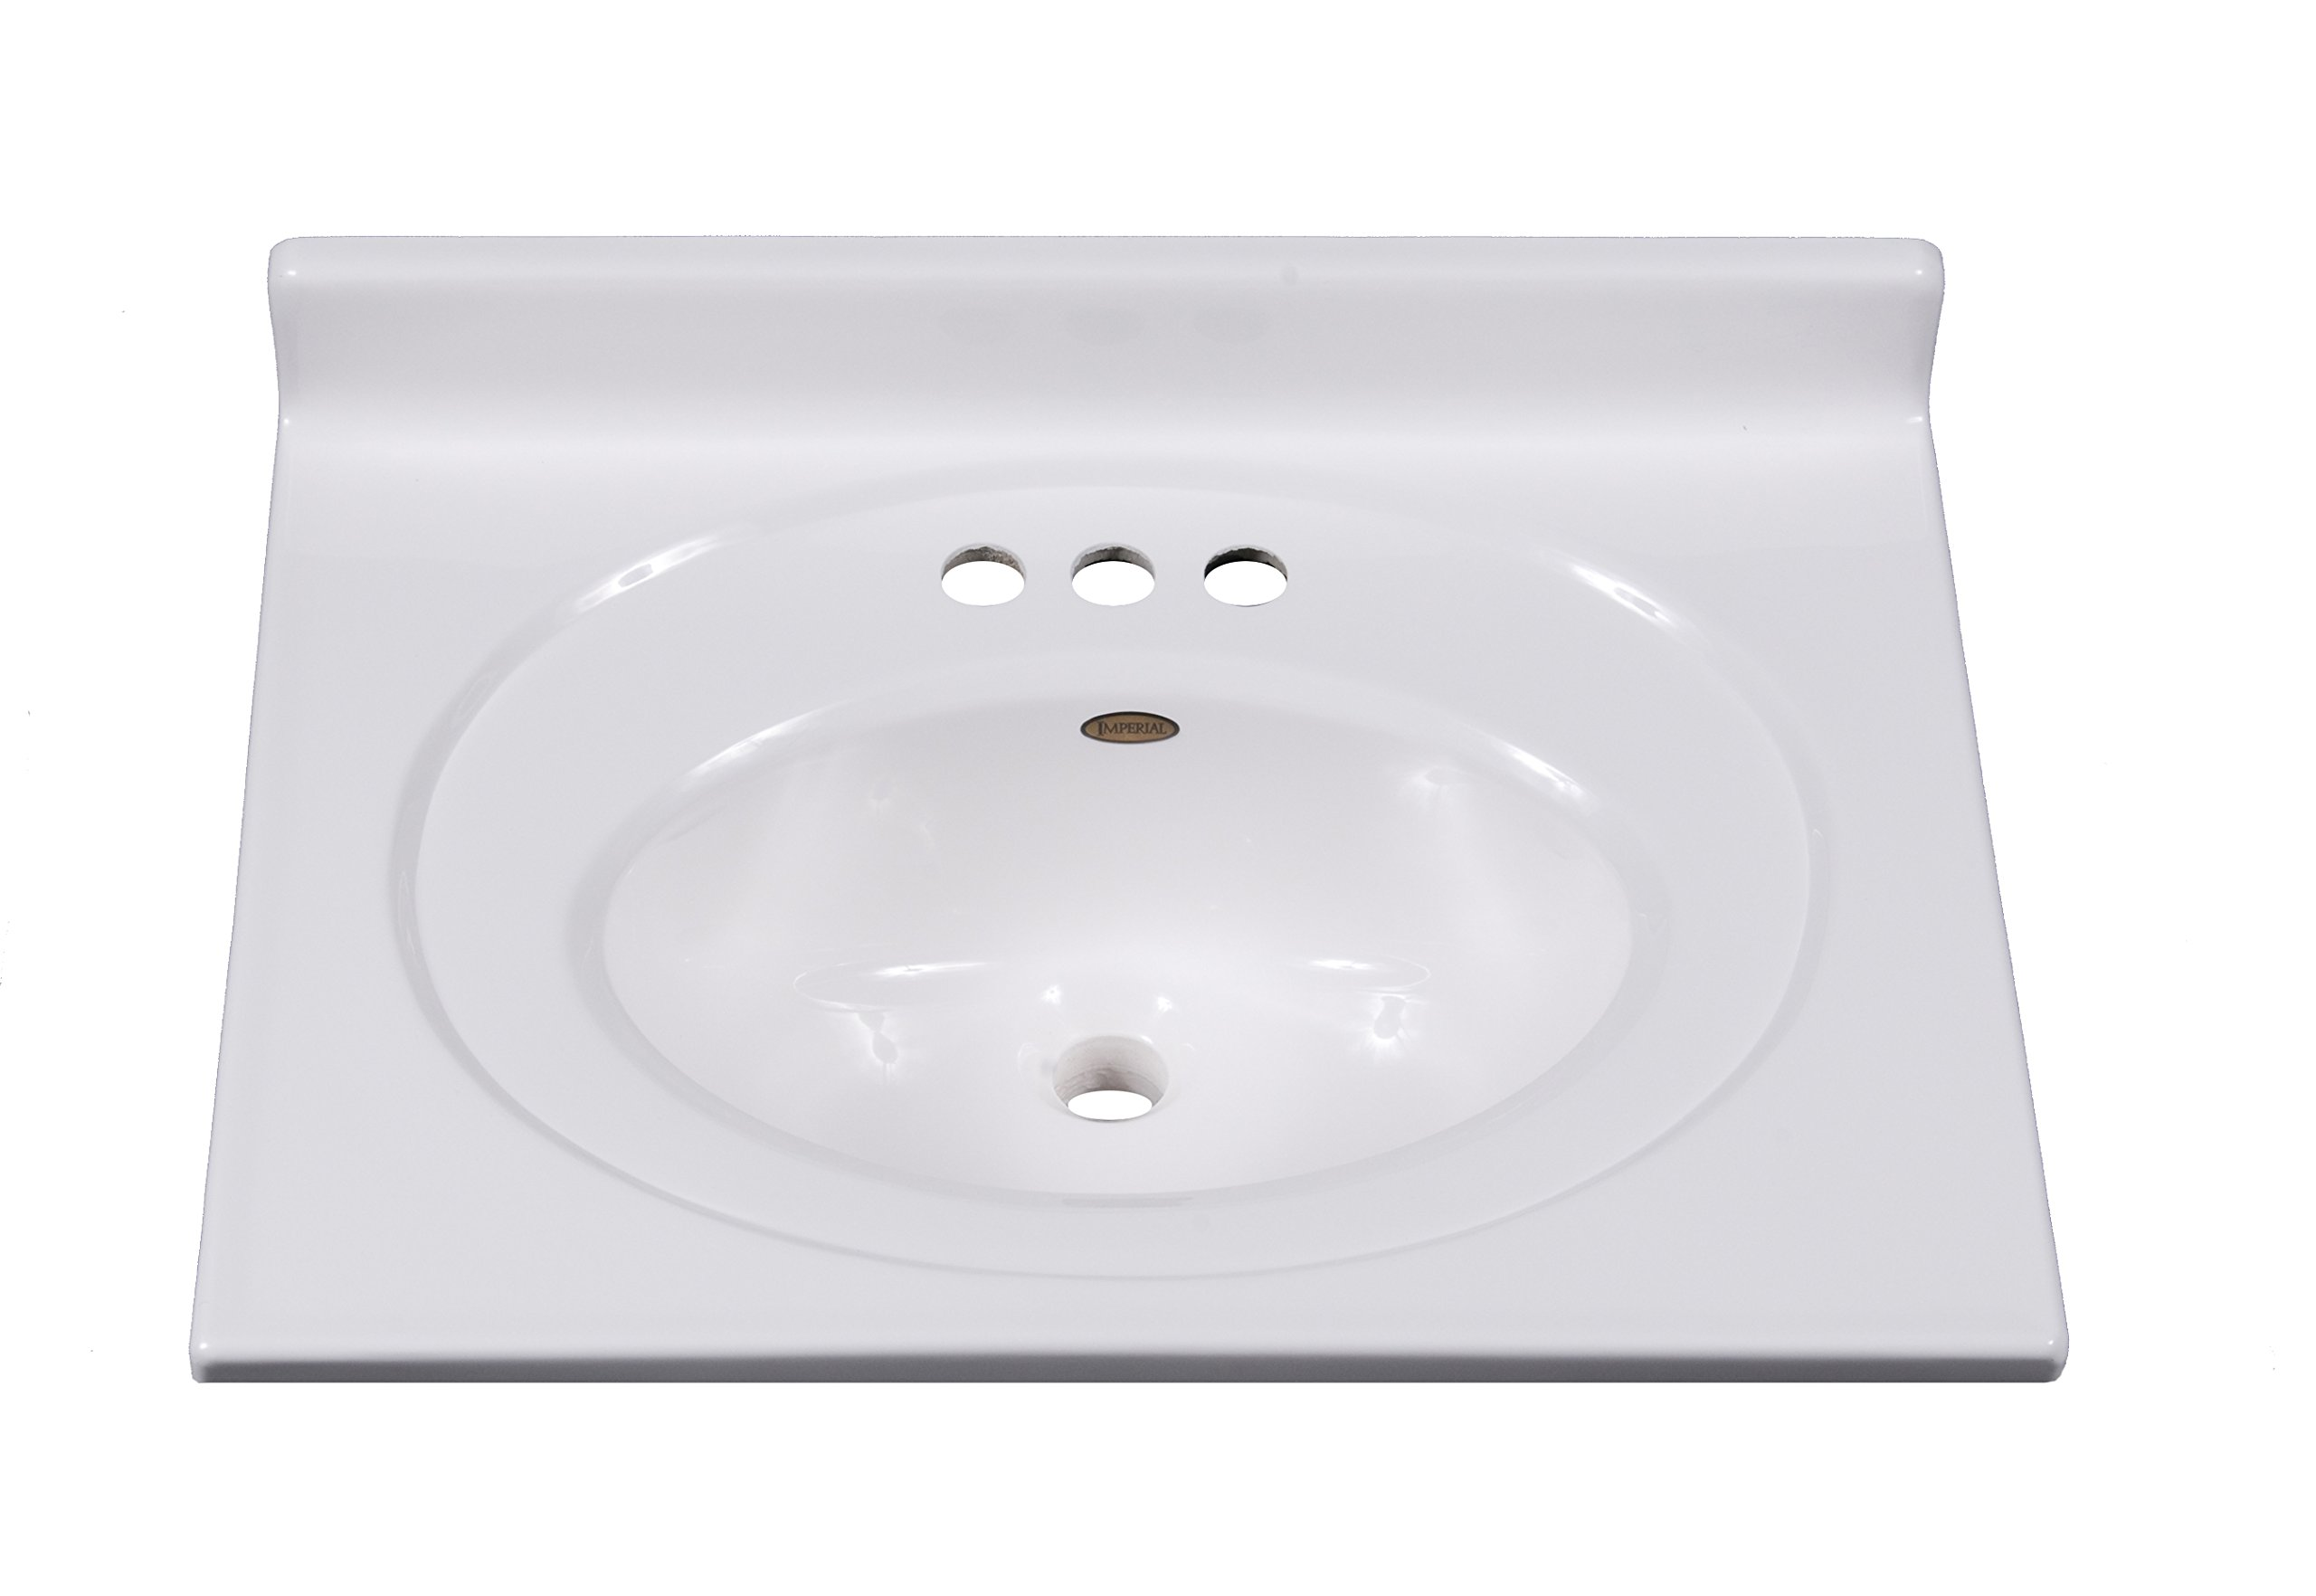 Imperial FS2519SPW Bathroom Vanity Top with Recessed Center Oval Bowl, Solid White Gloss Finish, 25-Inch Wide by 19-Inch Deep